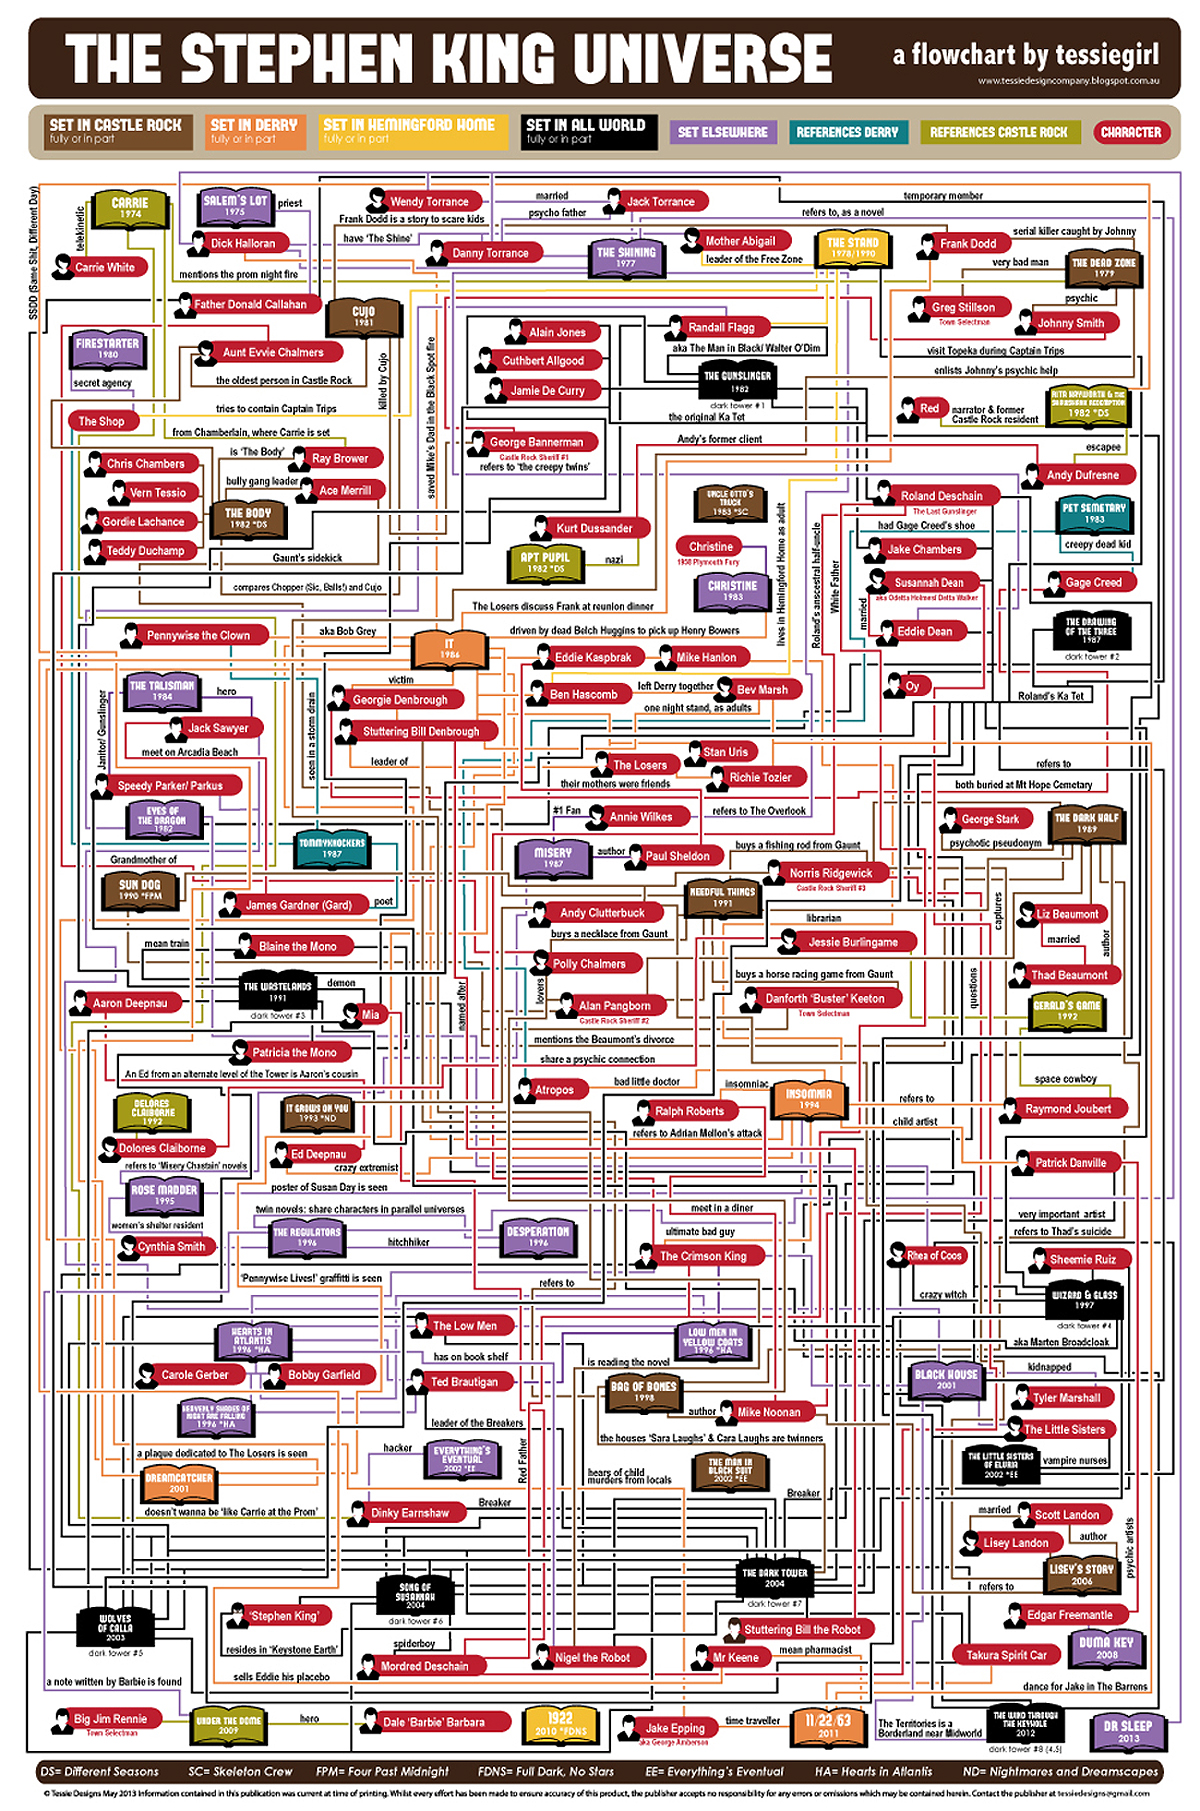 Stephen-King-Flowchart.jpg